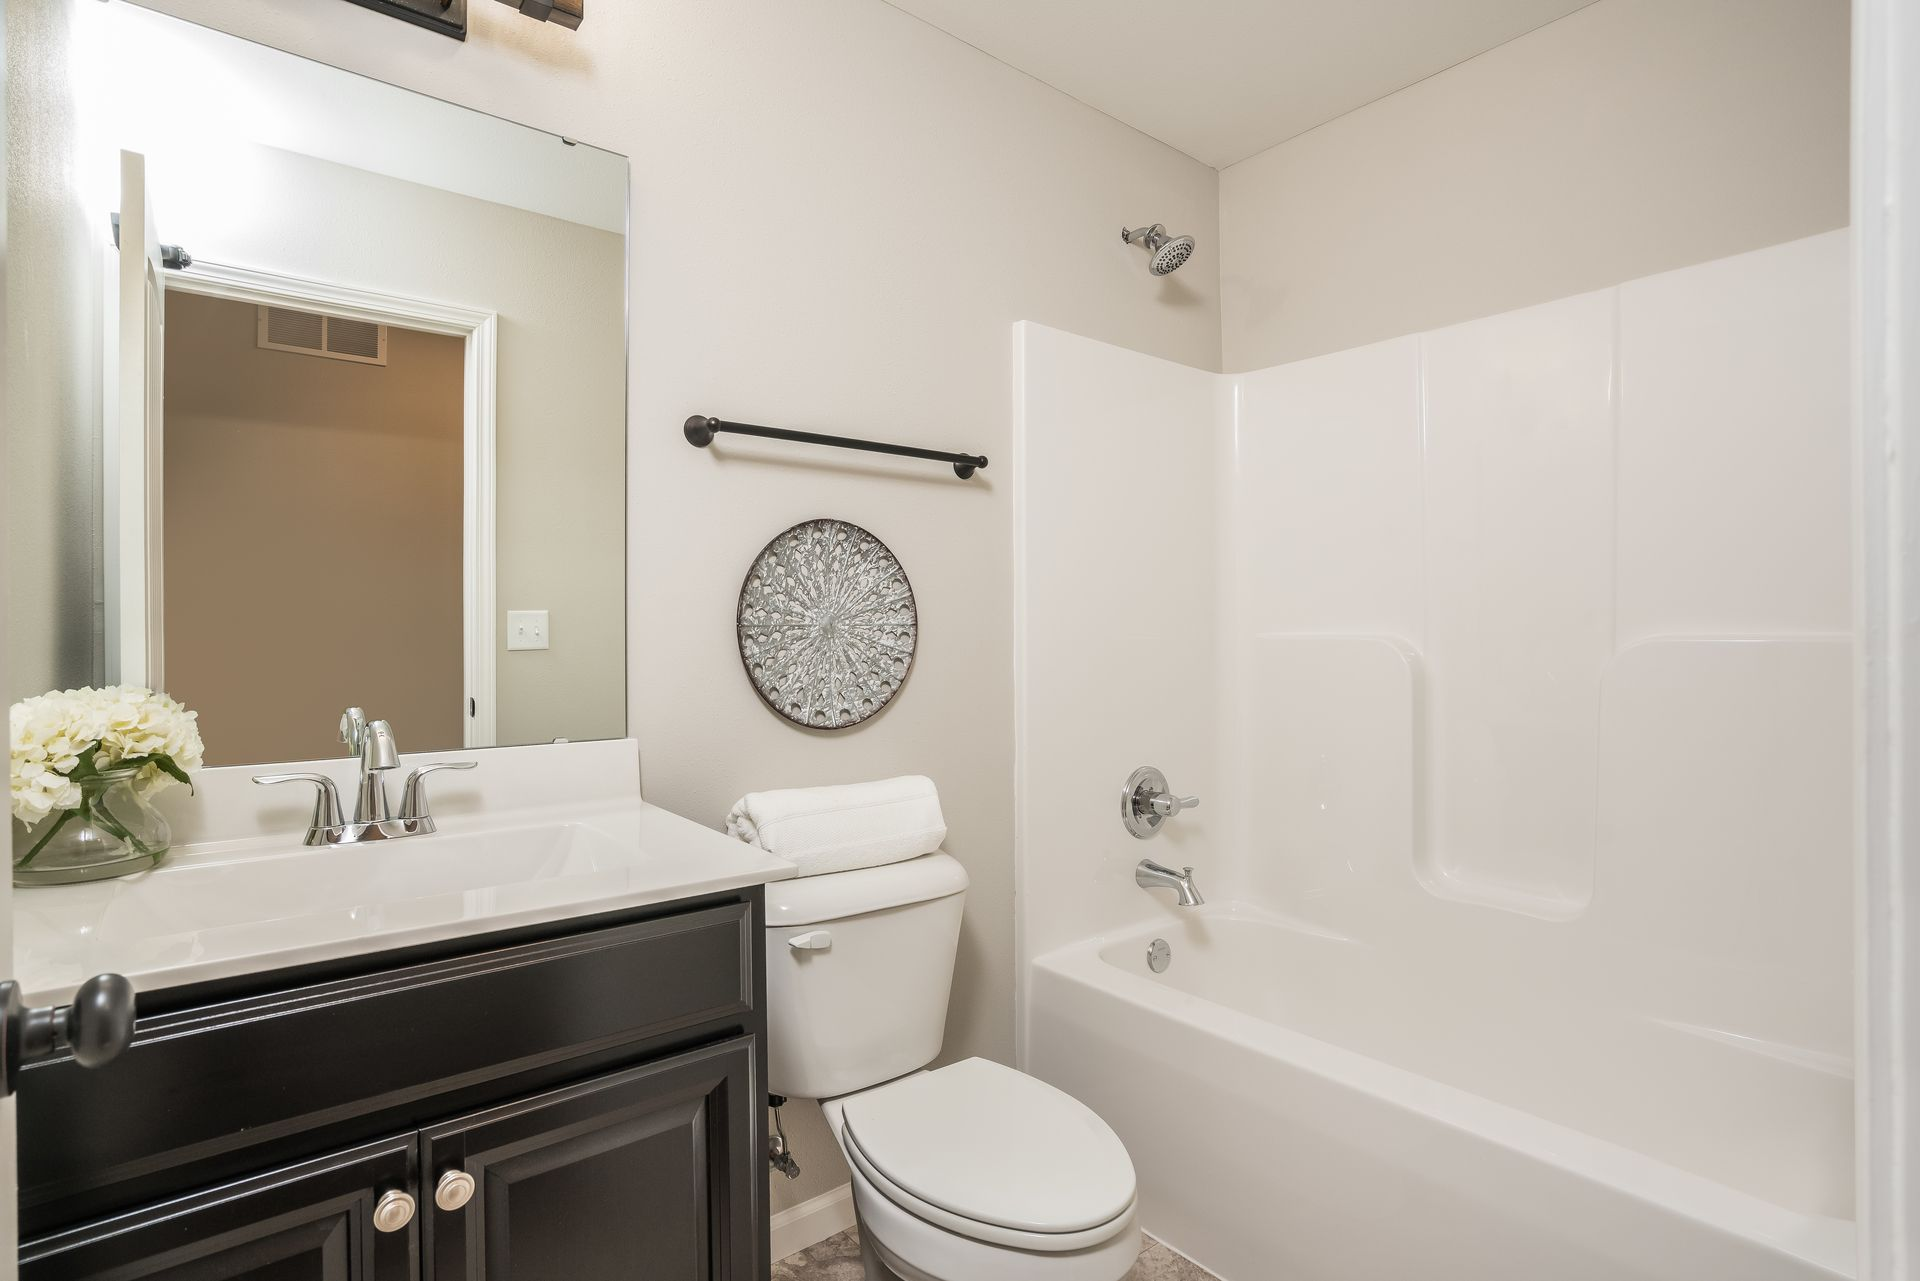 Bathroom featured in the Calais II By C.A. Jones, Inc.  in St. Louis, IL